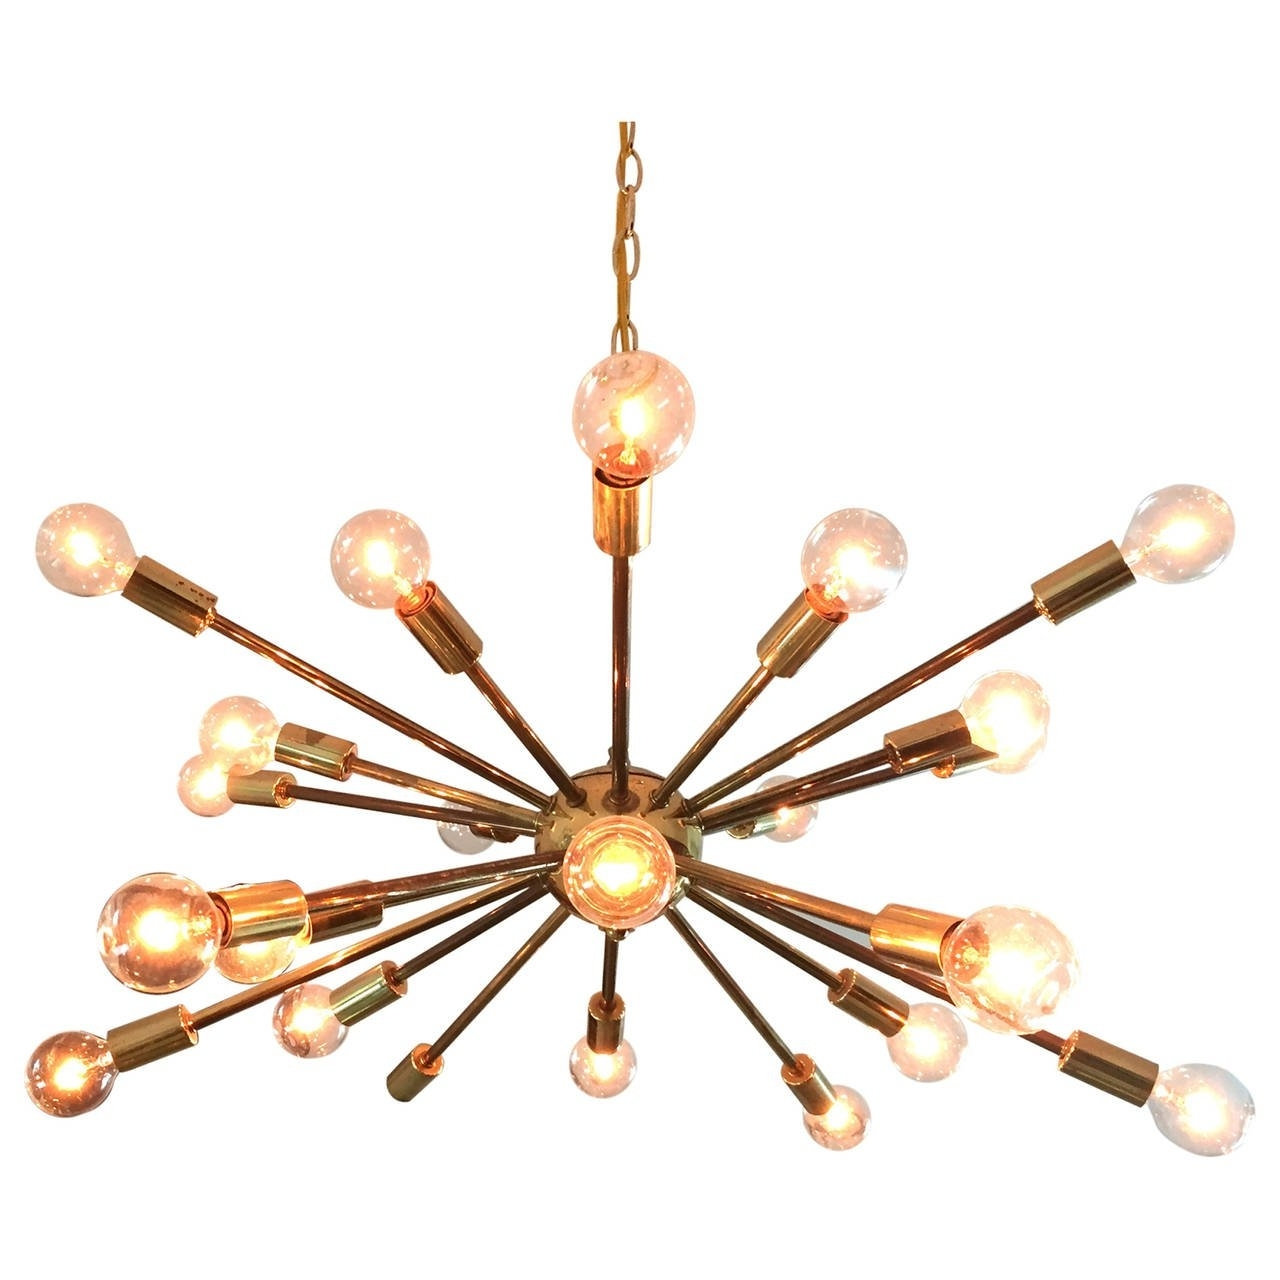 Most Up To Date Chandeliers Vintage Within Vintage American Midcentury Brass Sputnik Chandelier For Sale At 1stdibs (View 6 of 20)